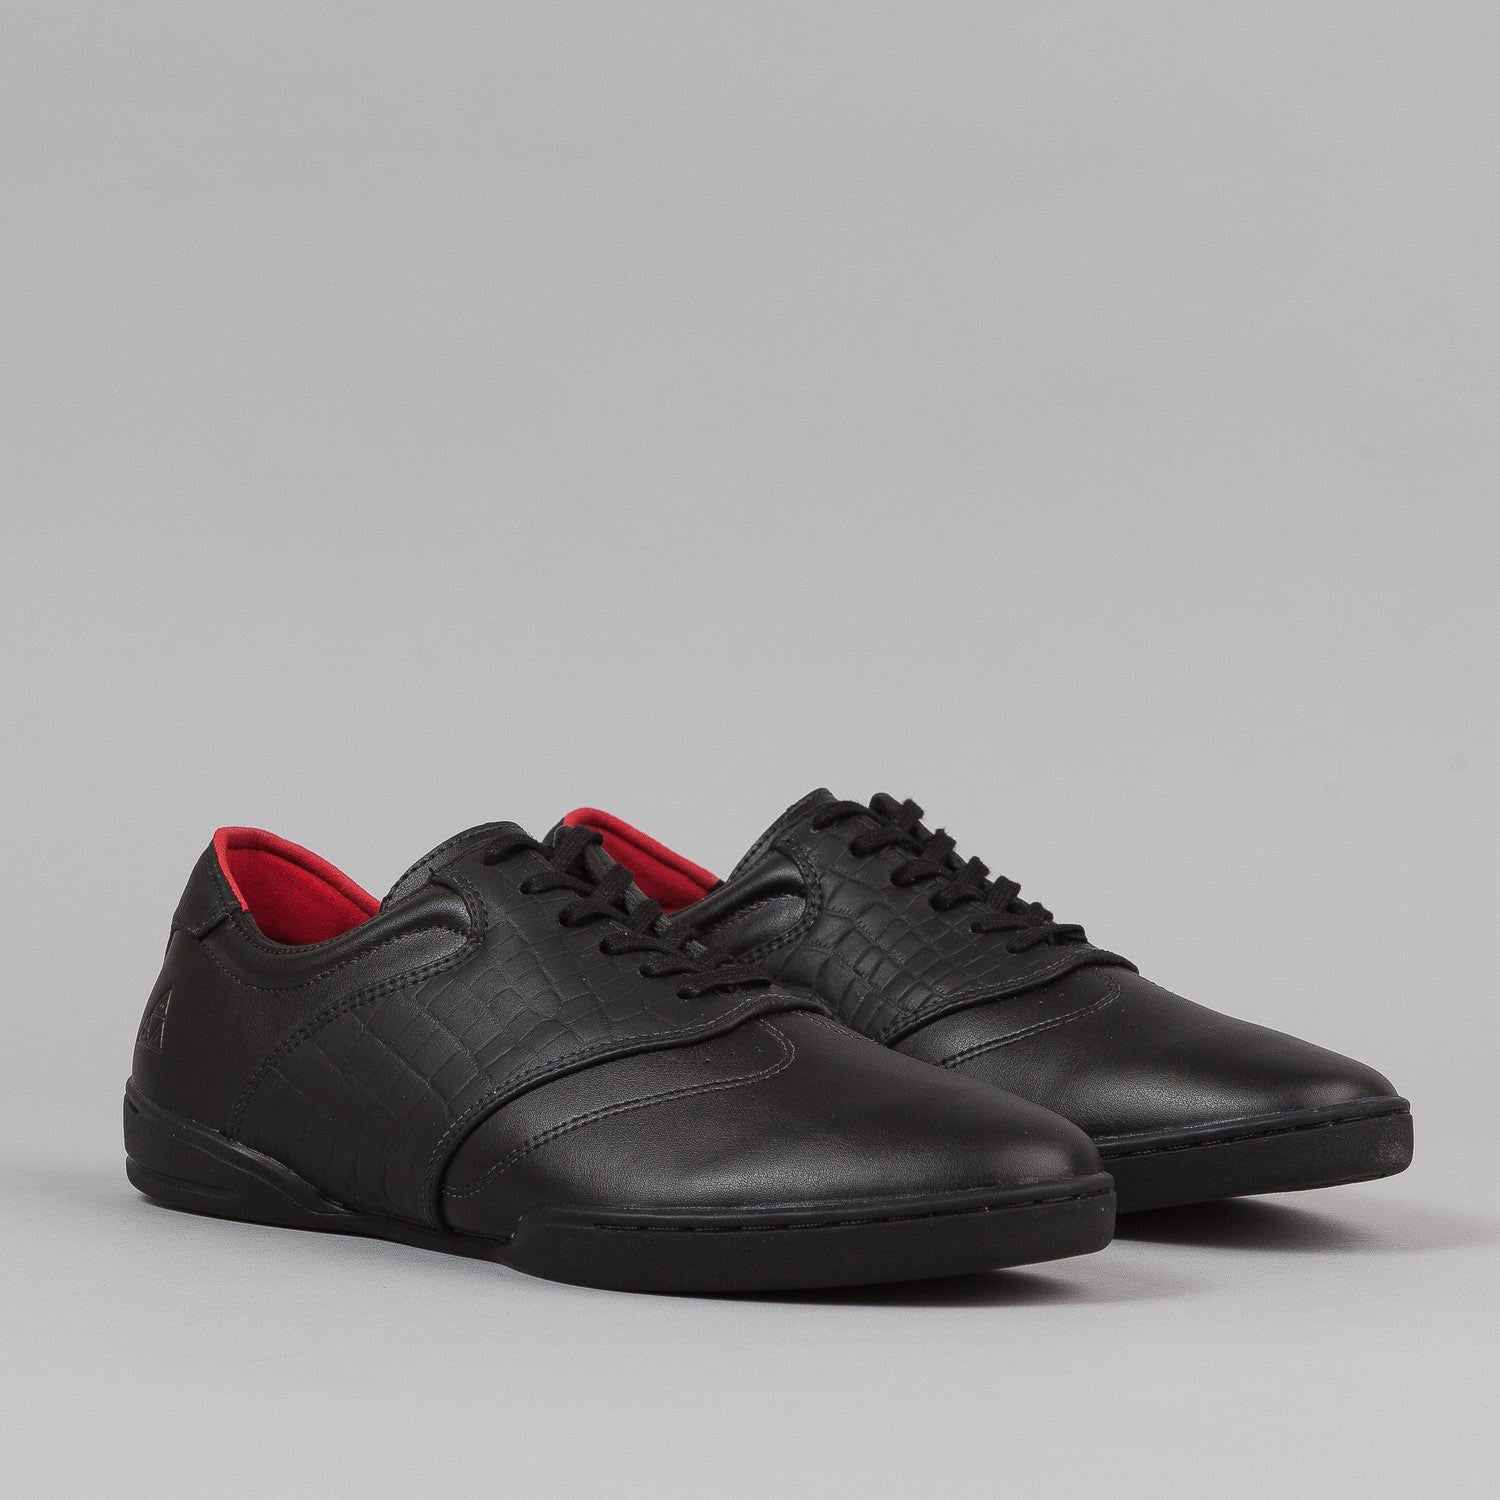 HUF Dylan Shoes - Black Leather / Croc